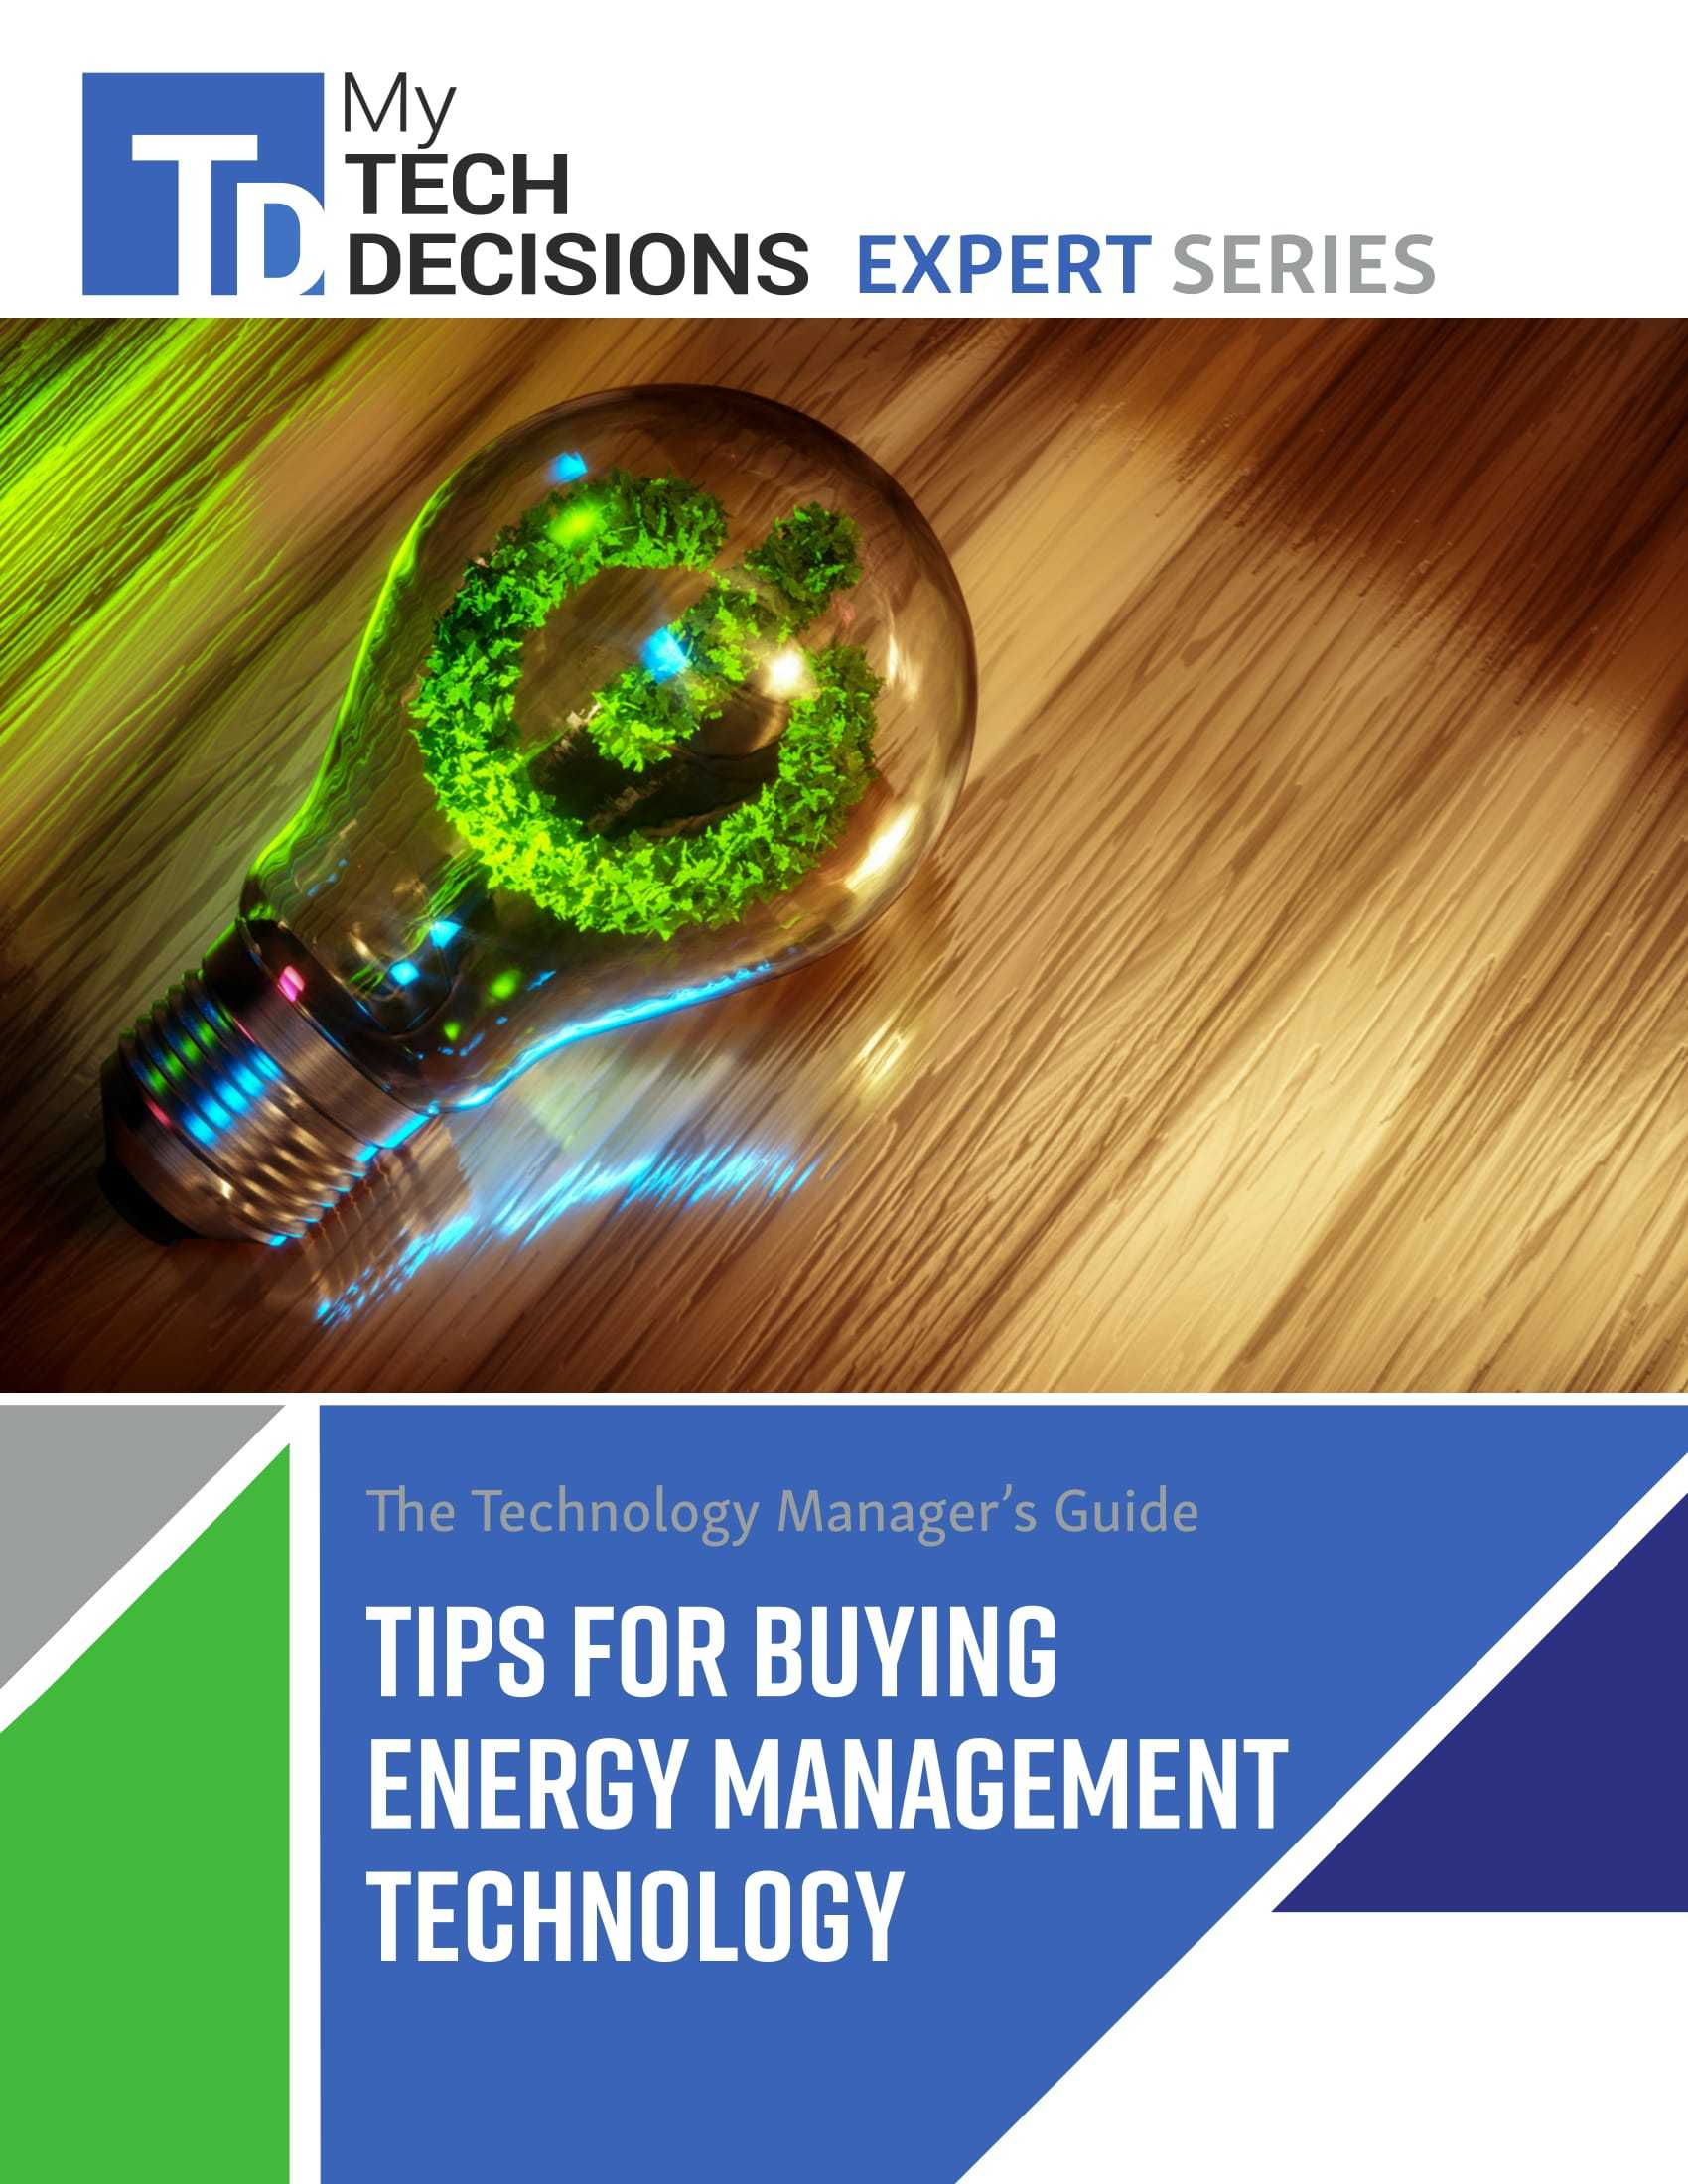 The Technology Manager's Guide: Tips for Buying Energy Management